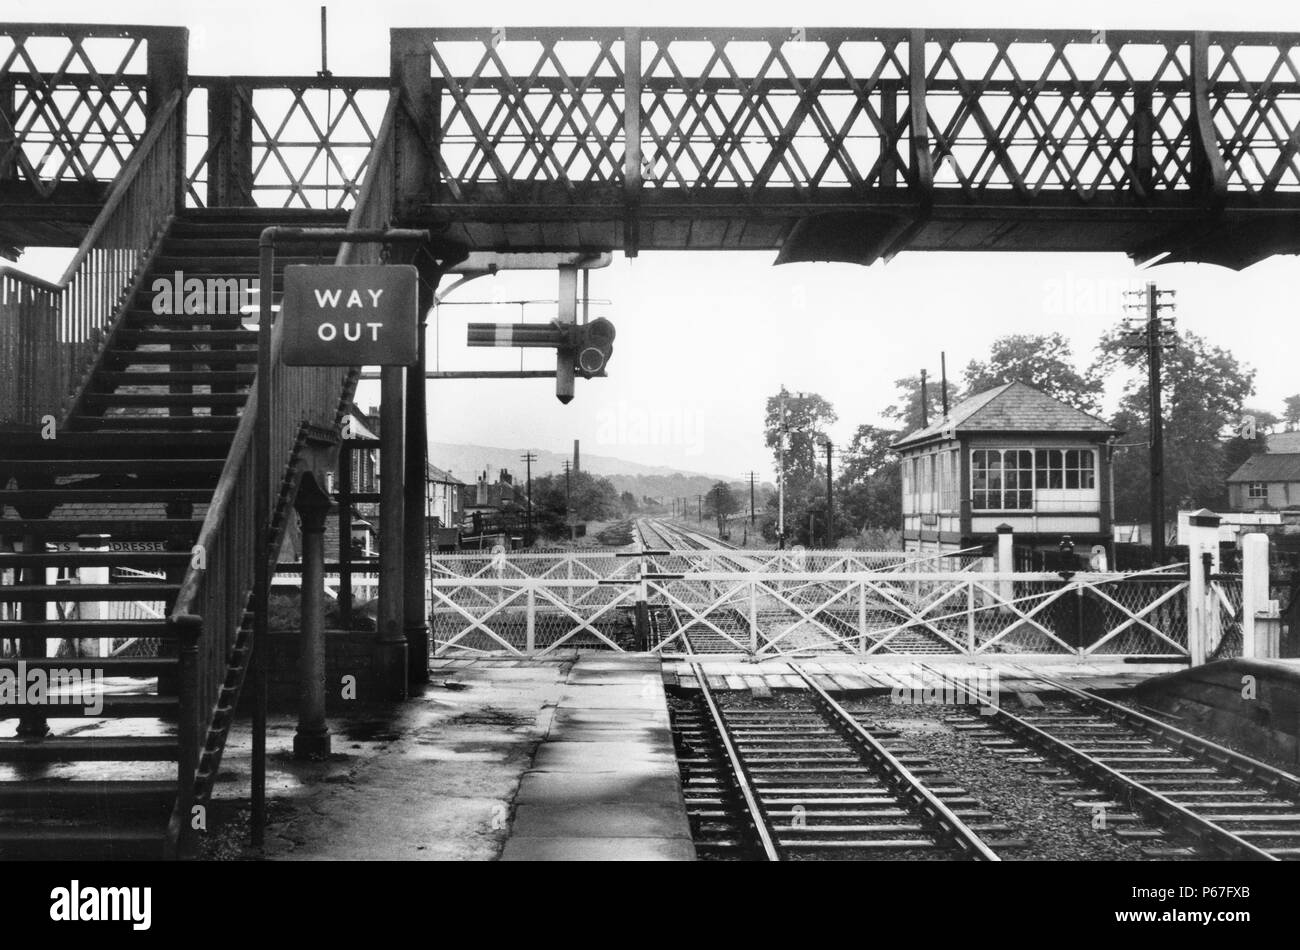 Footbridge and level crossing believed to be on Settle to Carlisle showing signal box and semaphore signals of Midland Railway origin. C 1962 - Stock Image